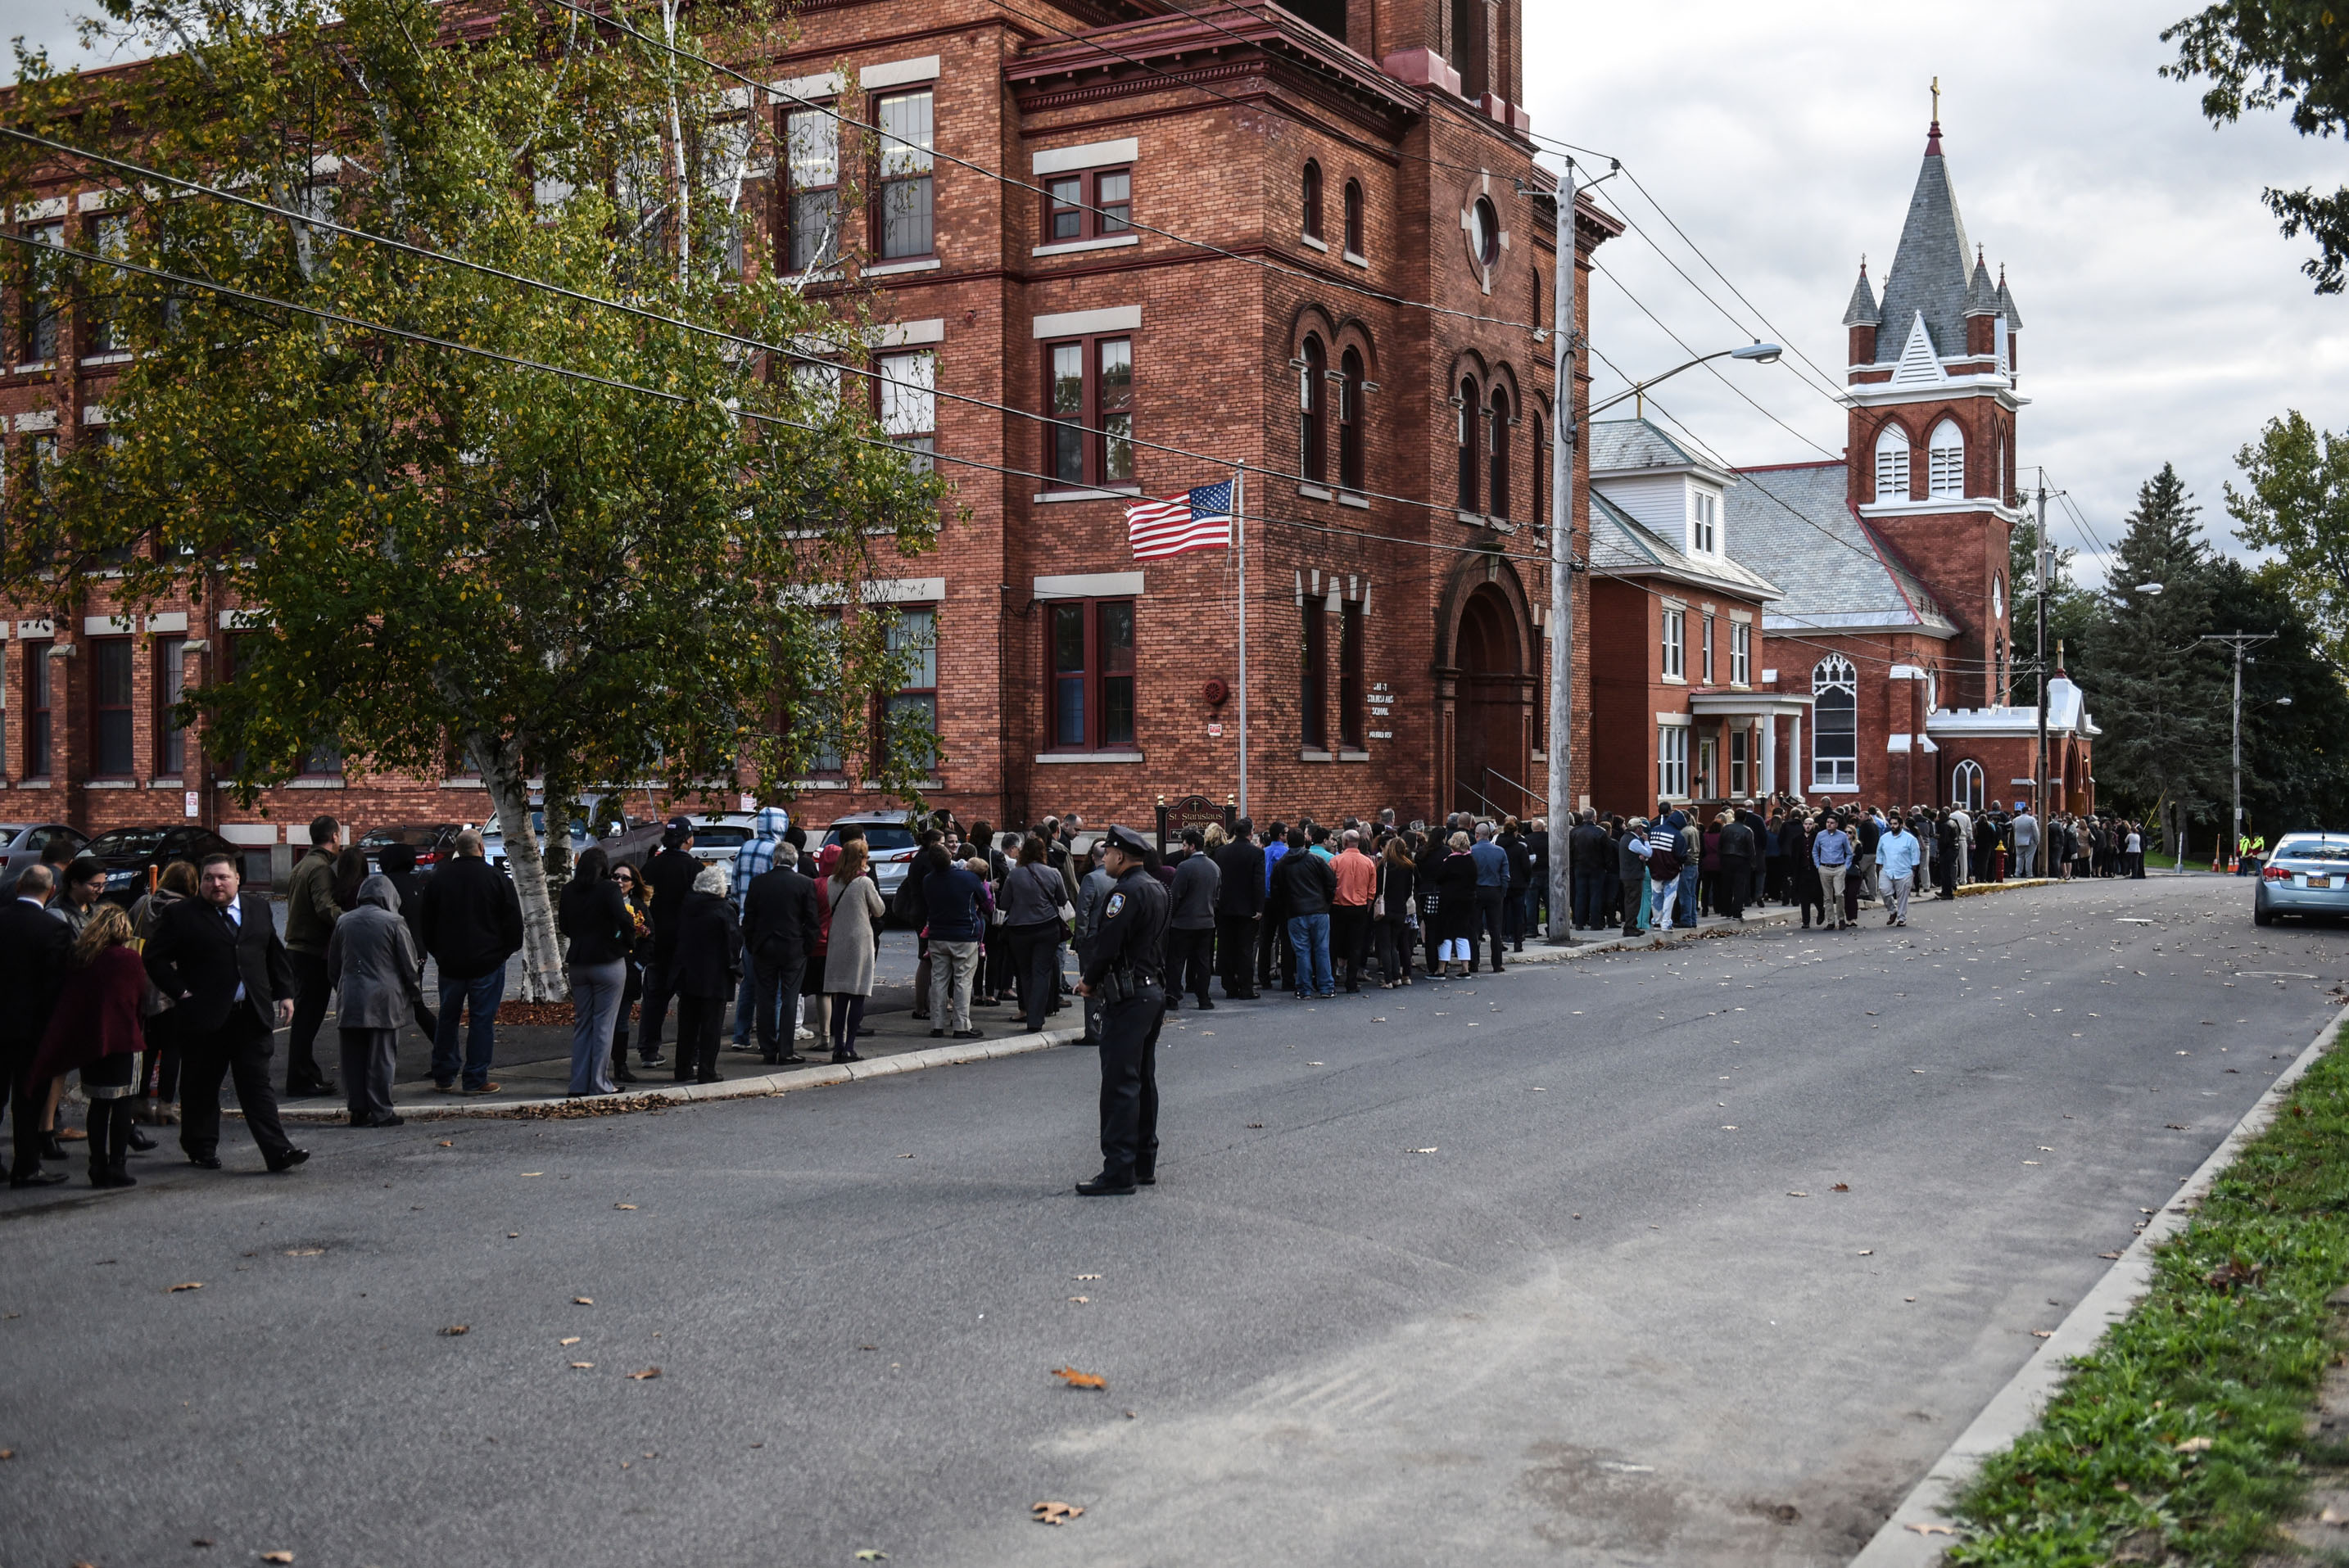 Mourners line up in front of St. Stanislaus Roman Catholic Church to pay their respects to some of the victims in last weekend's fatal limo crash on October 12, 2018 in Amsterdam, New York. Photo by Stephanie Keith/Getty Images